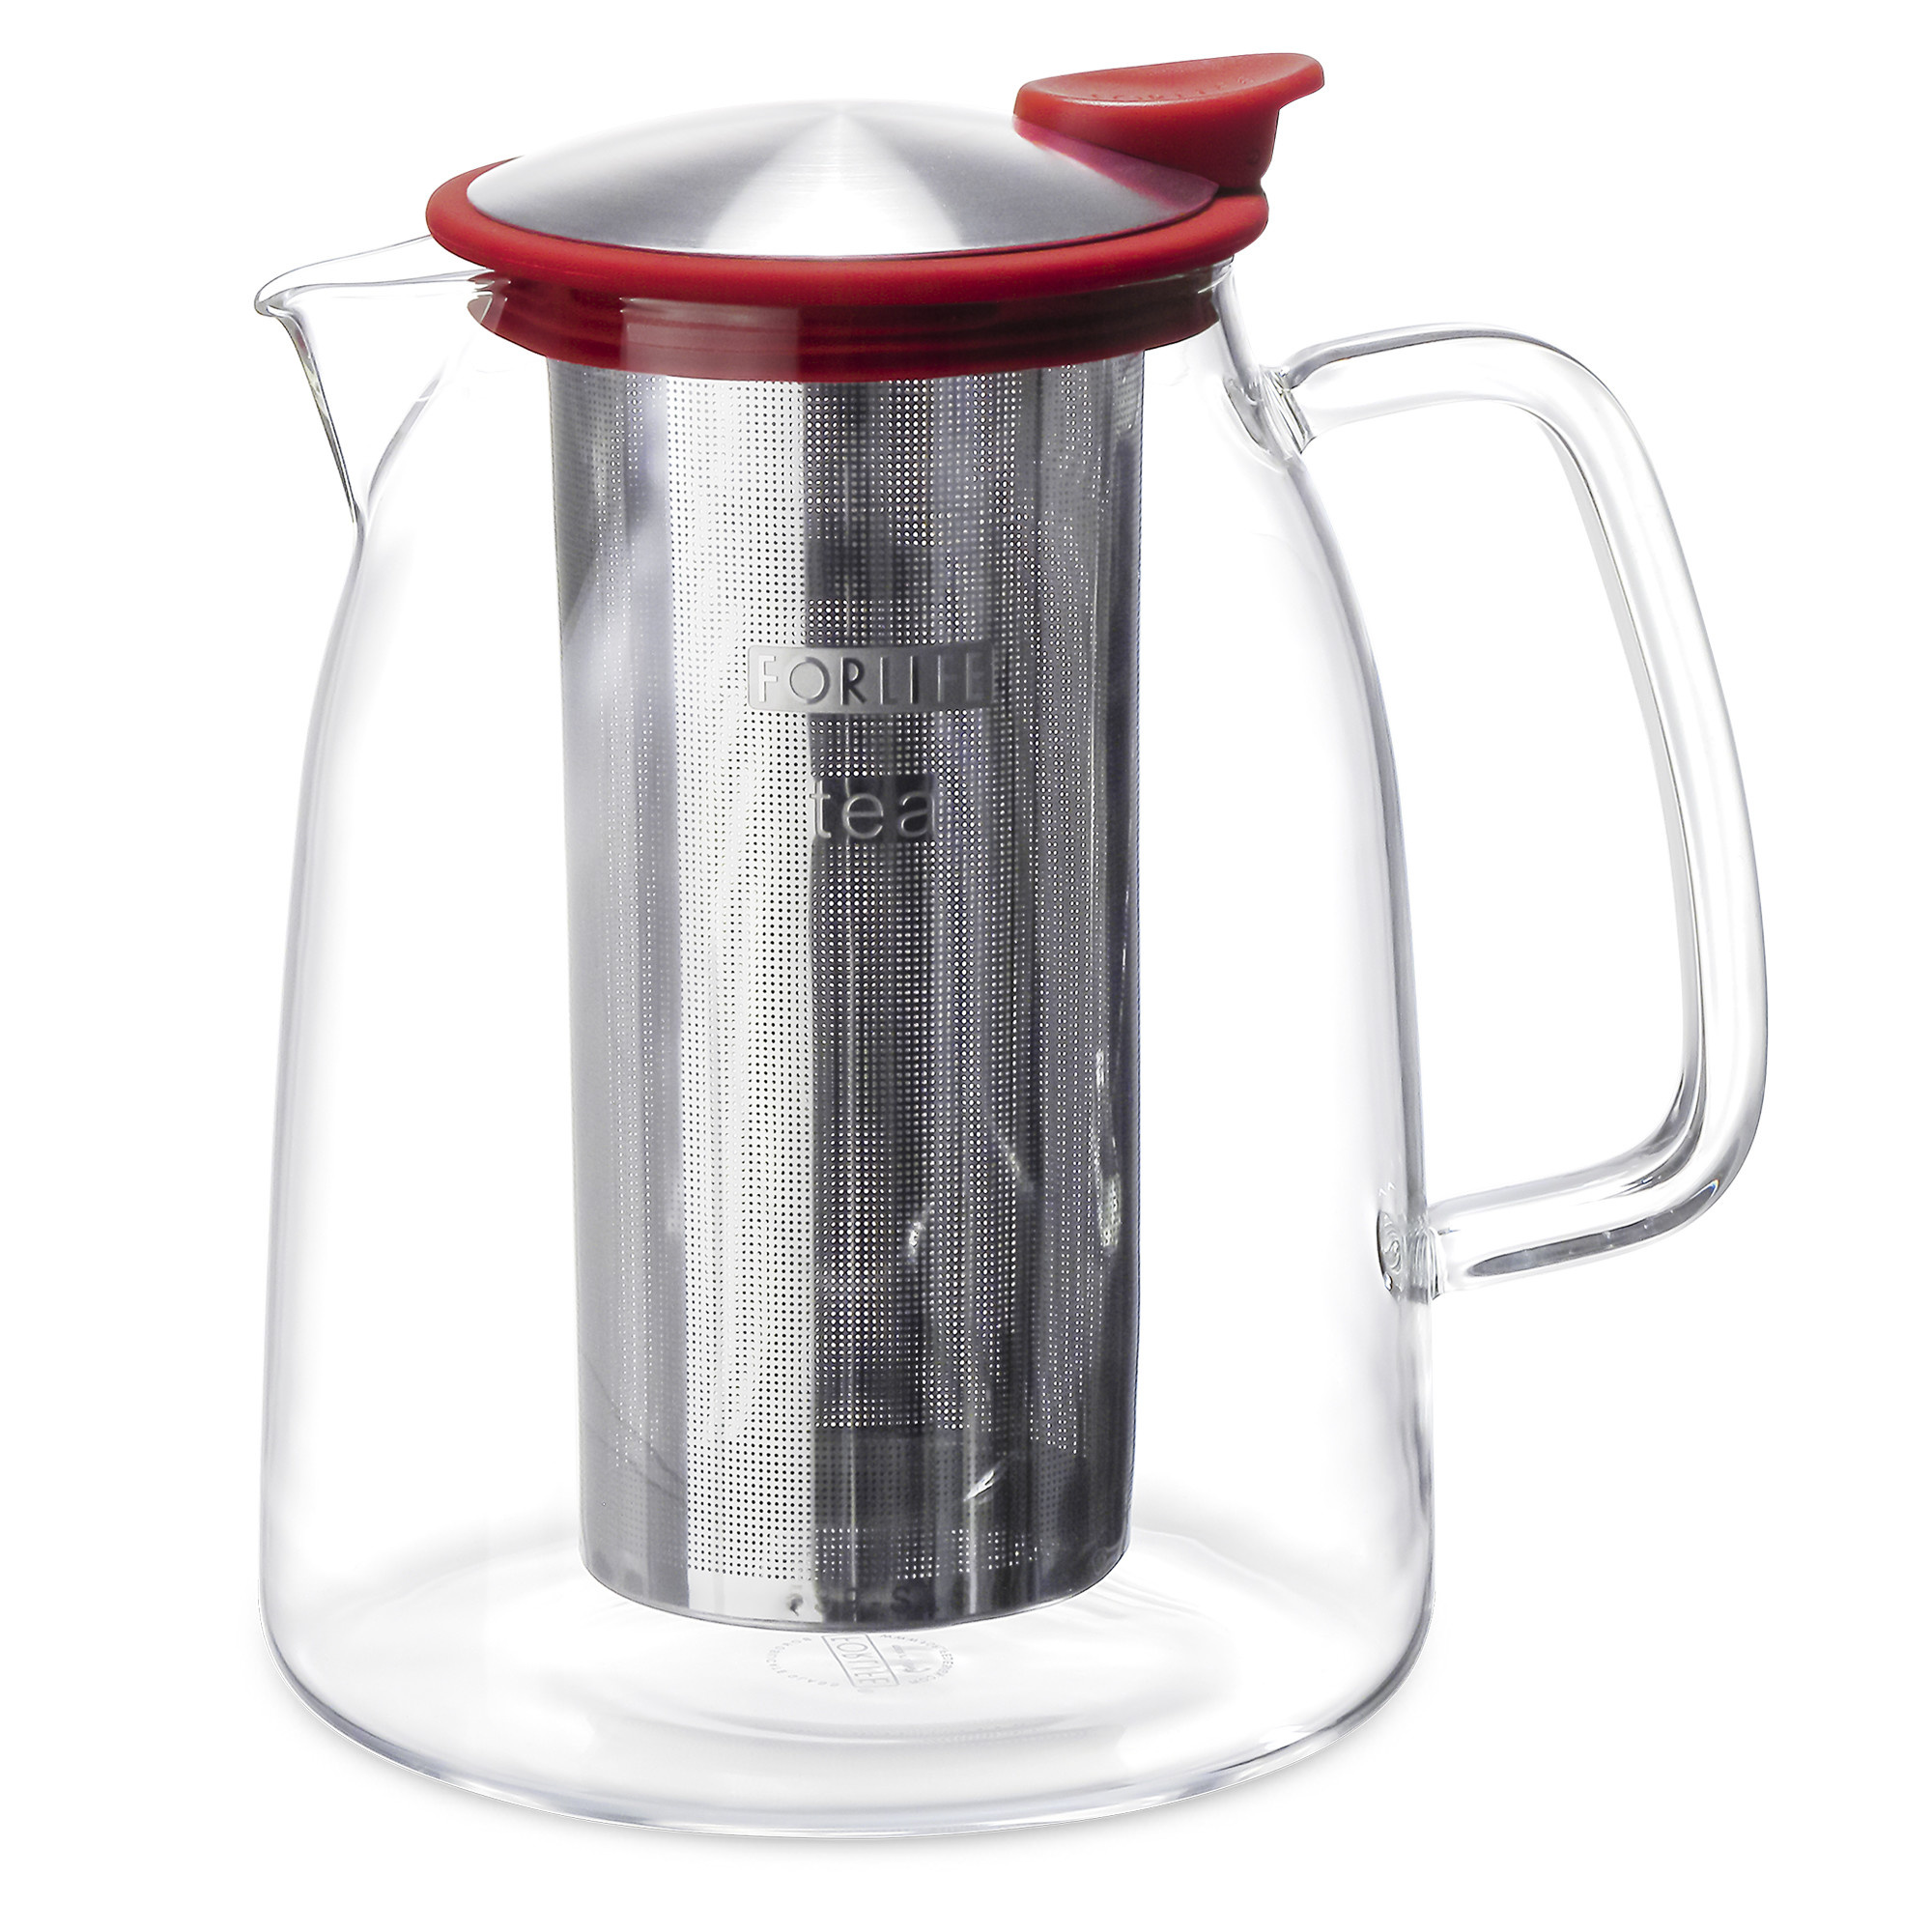 Big iced tea pitcher 68 oz